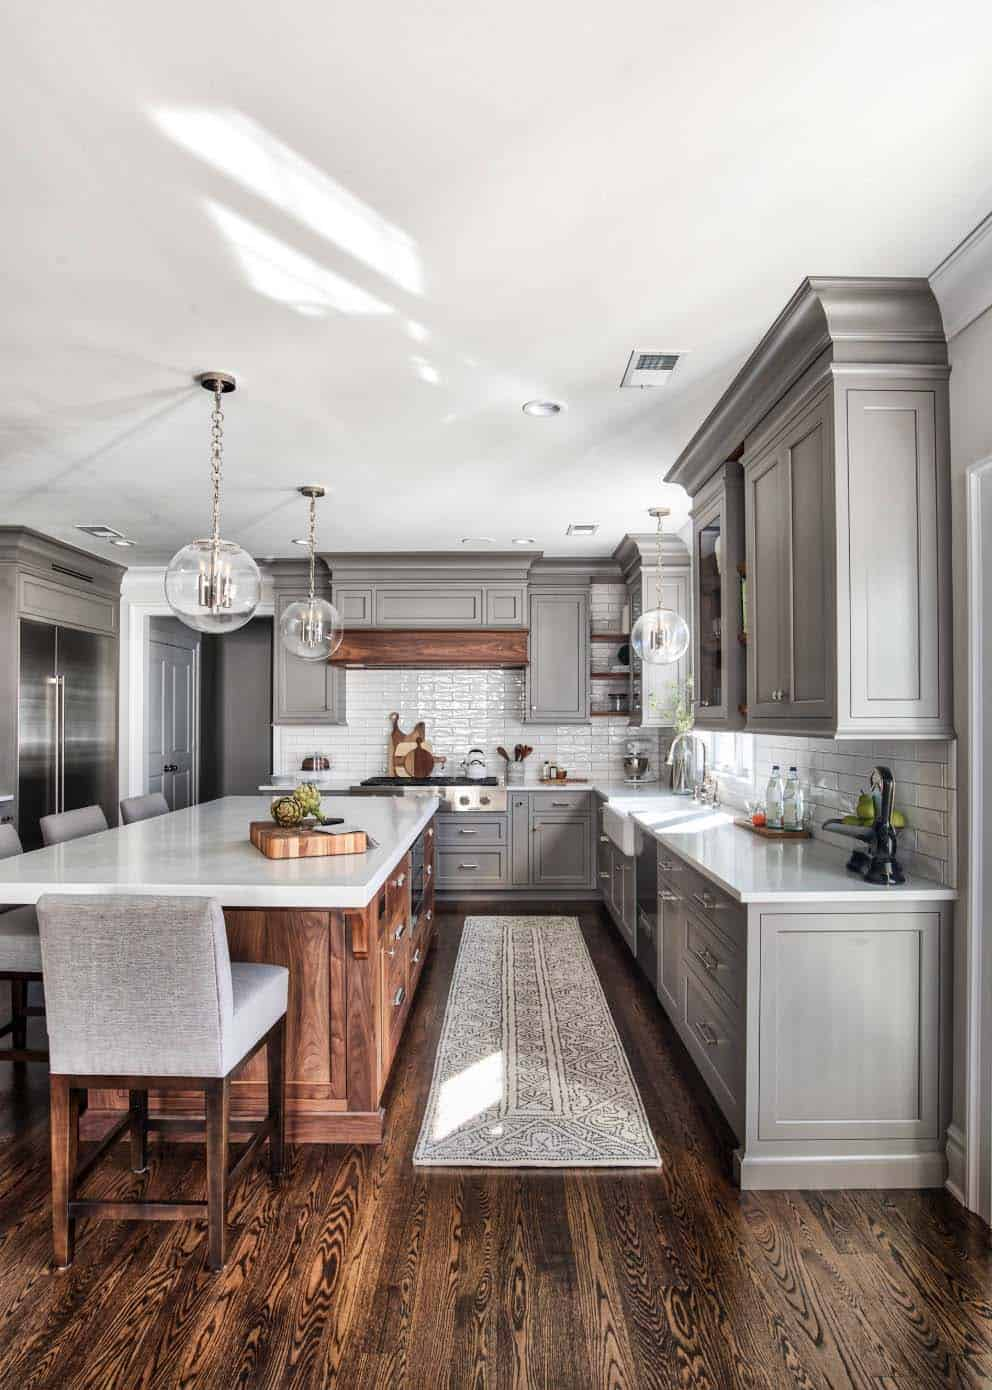 Stylish Kitchen Cabinet Pulls 25+ Absolutely Gorgeous Transitional Style Kitchen Ideas